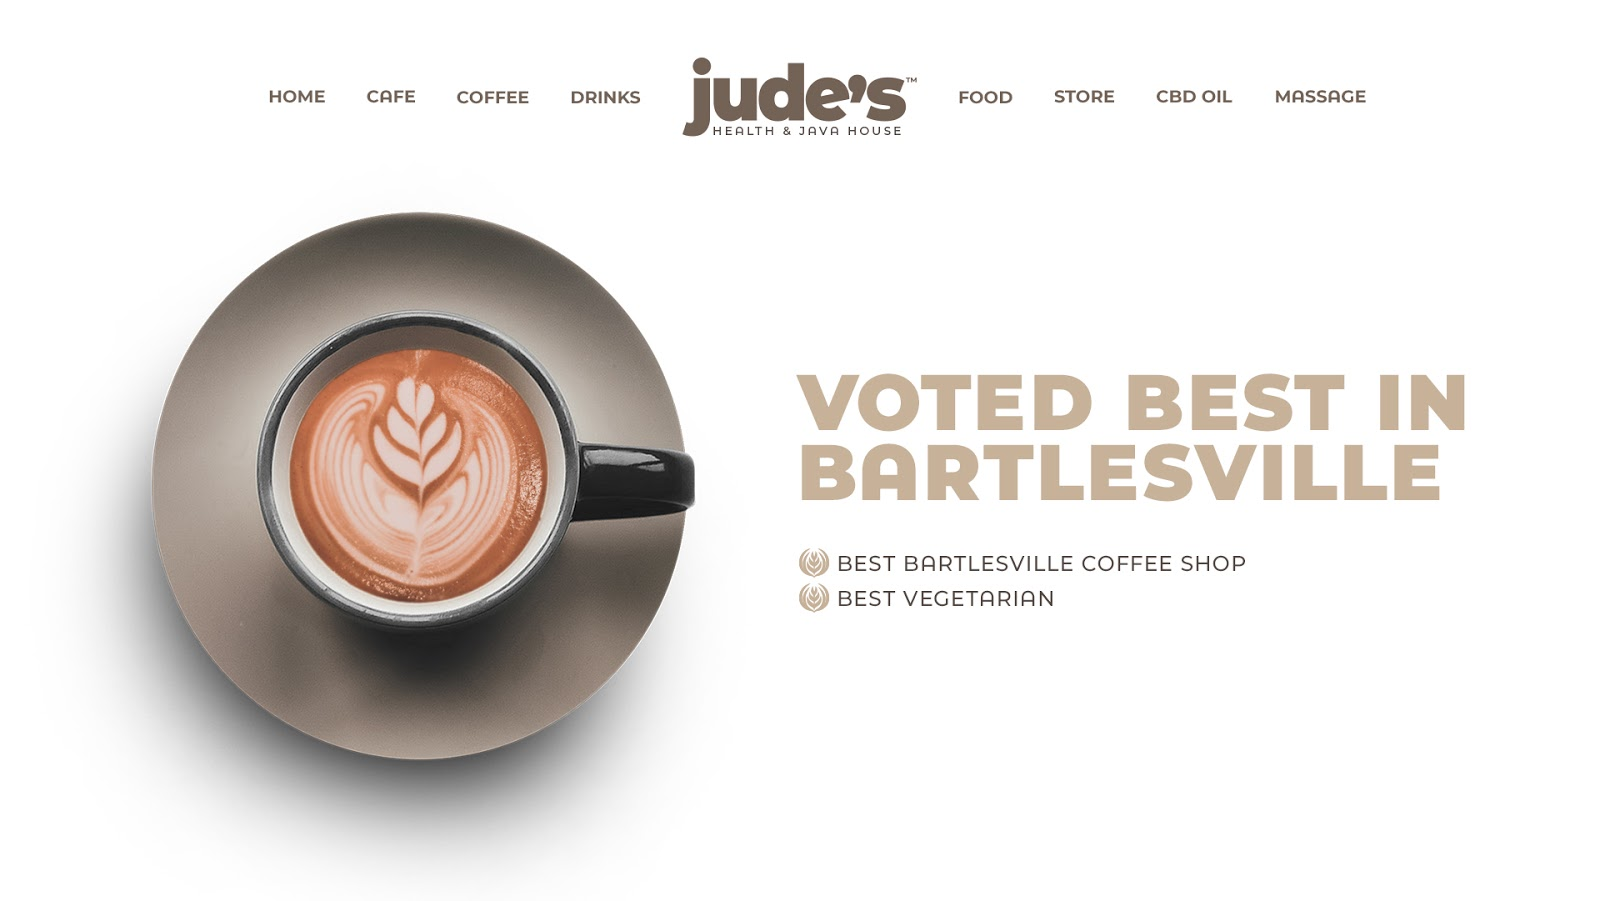 A new design of the Jude's website, featuring their status as best Bartlesville coffee shop